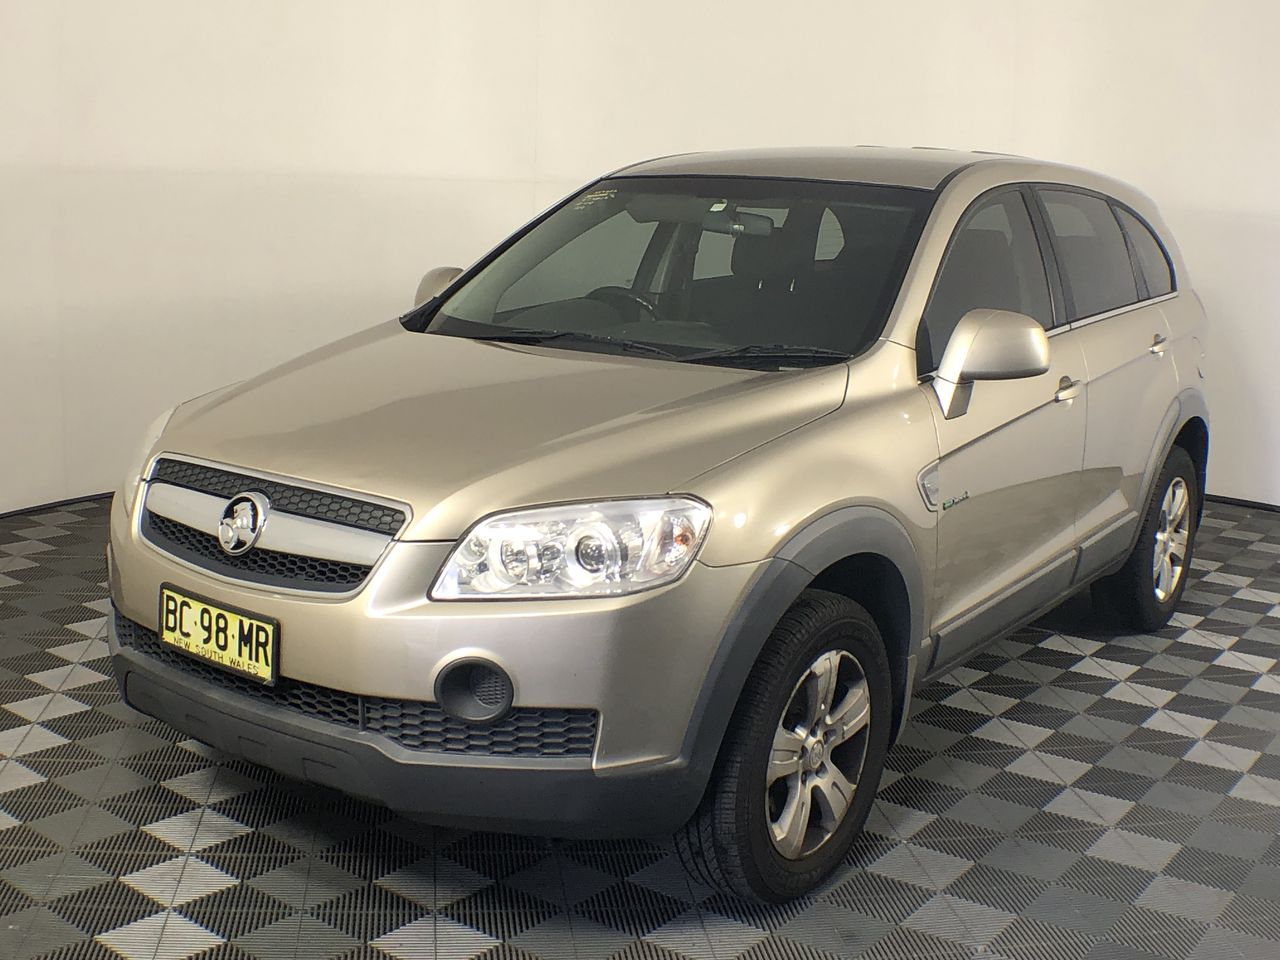 2009 Holden Captiva SX (FWD) CG Turbo Diesel Automatic 7 Seats Wagon